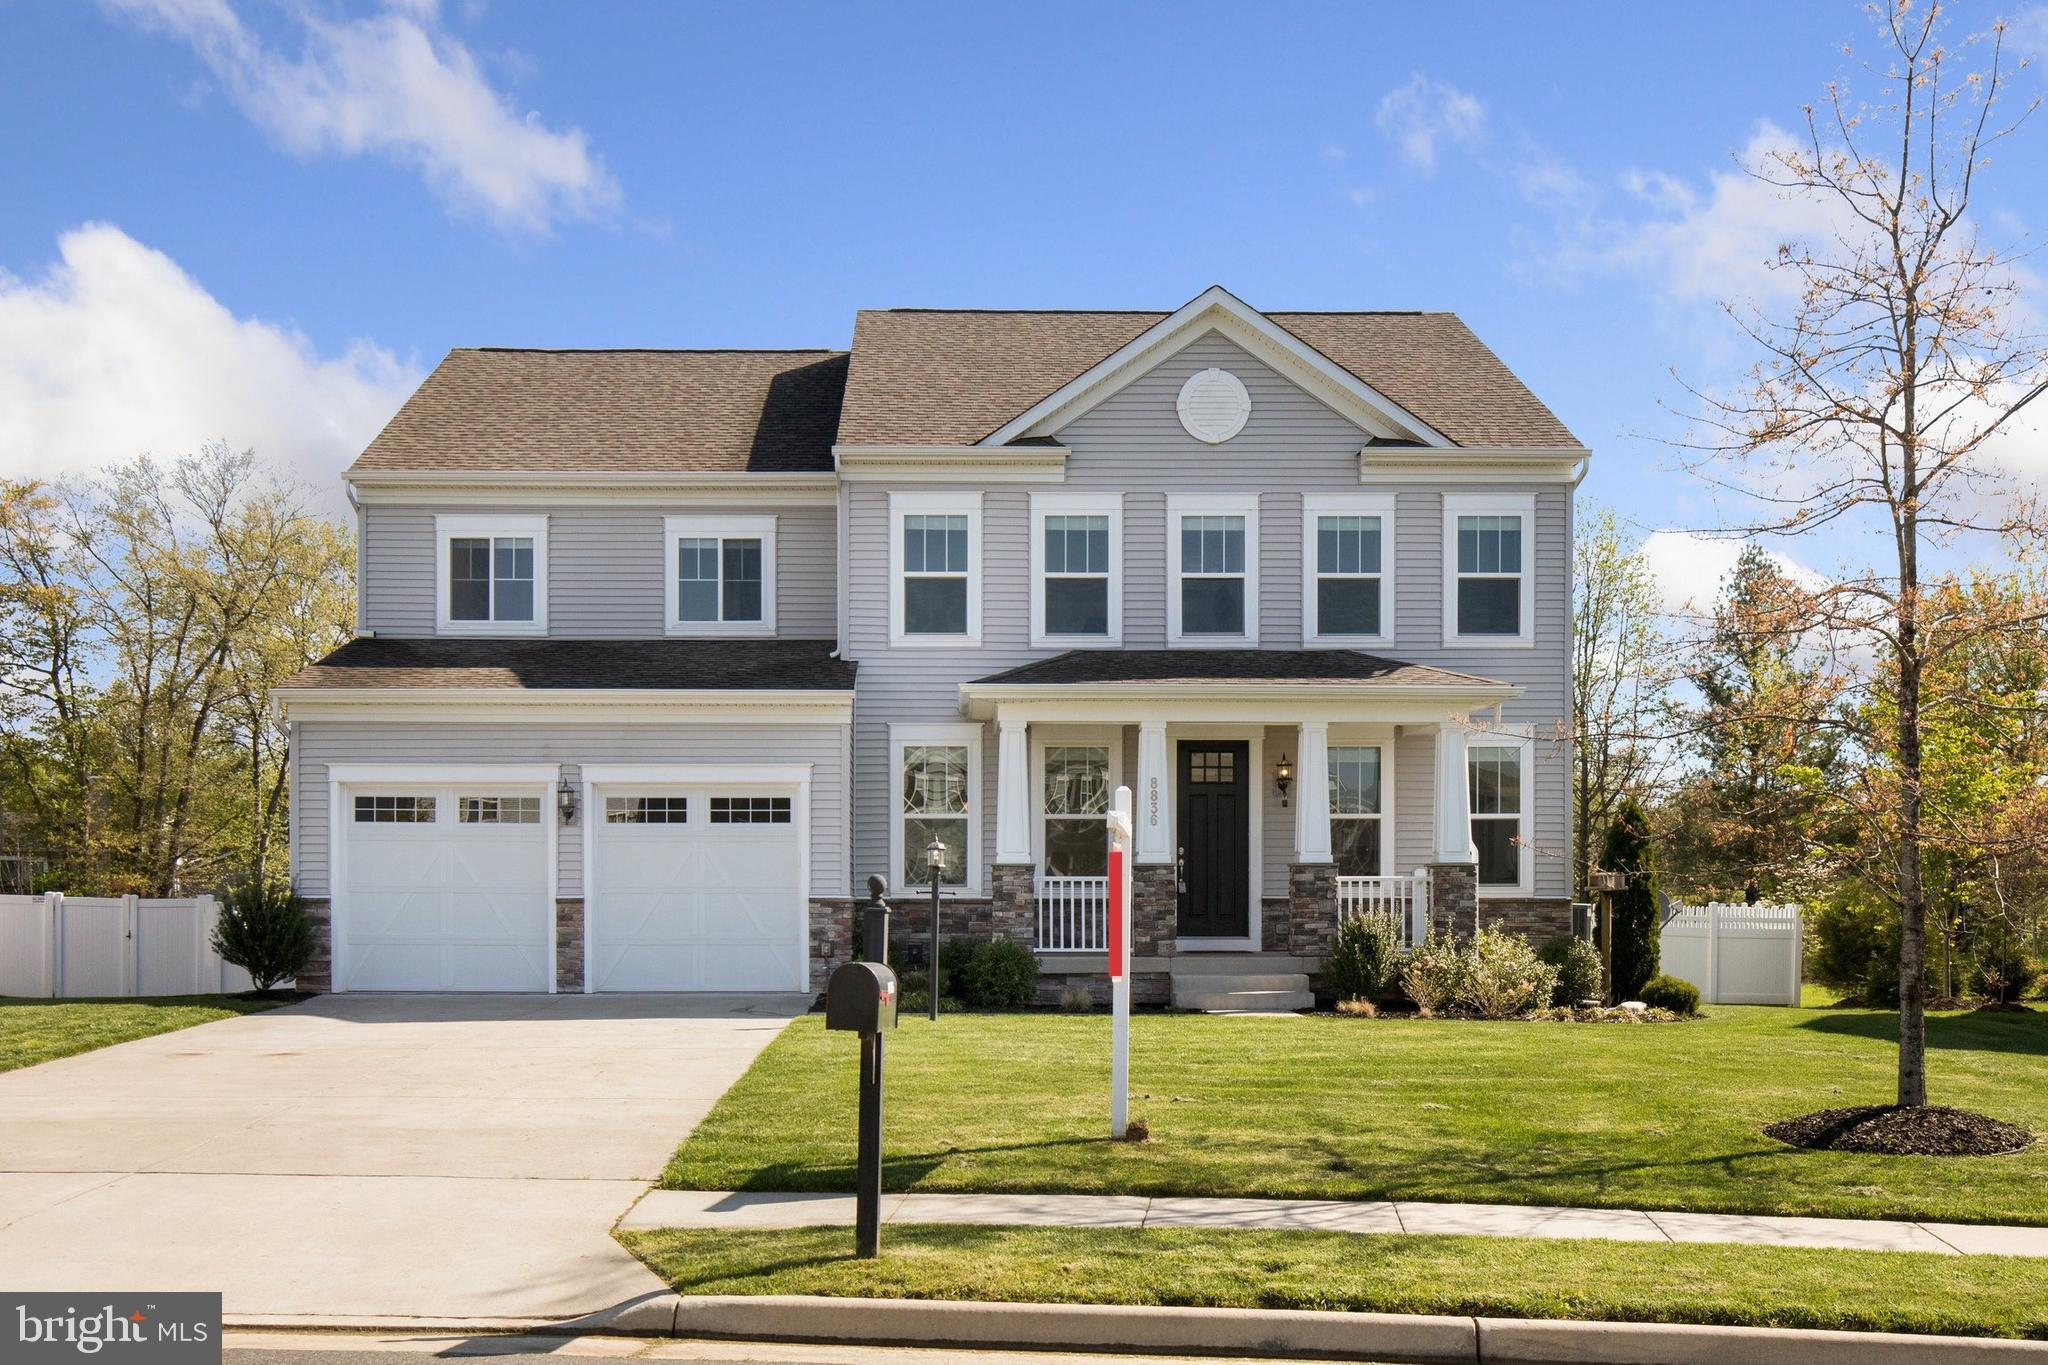 Welcome to 8836 Old Dominion Hunt Circle! This beautiful 4 bedroom, 4.5 bathroom Stanley Martin home